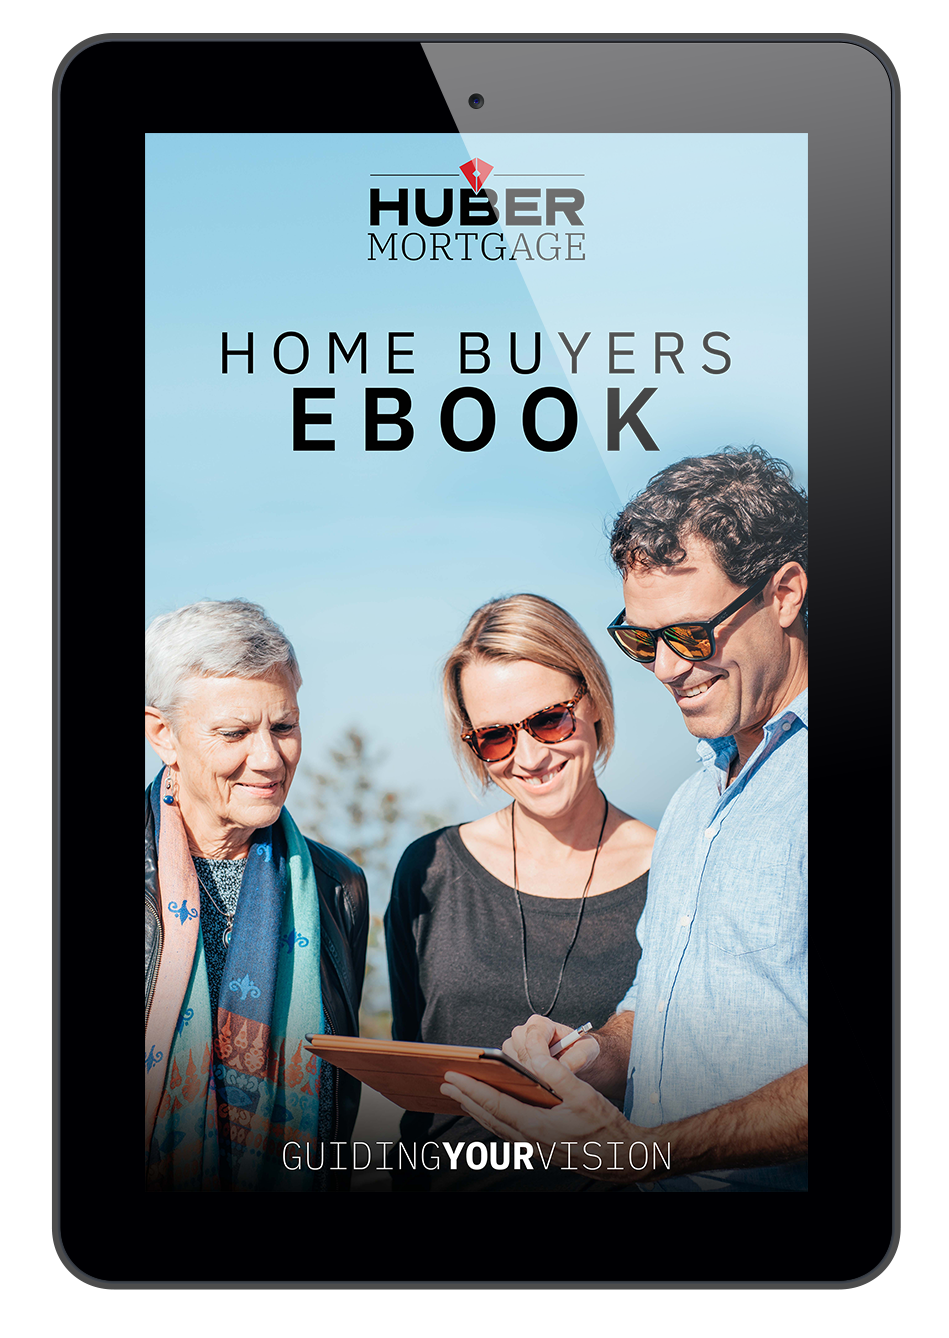 Huber Mortgage Ebook Cover